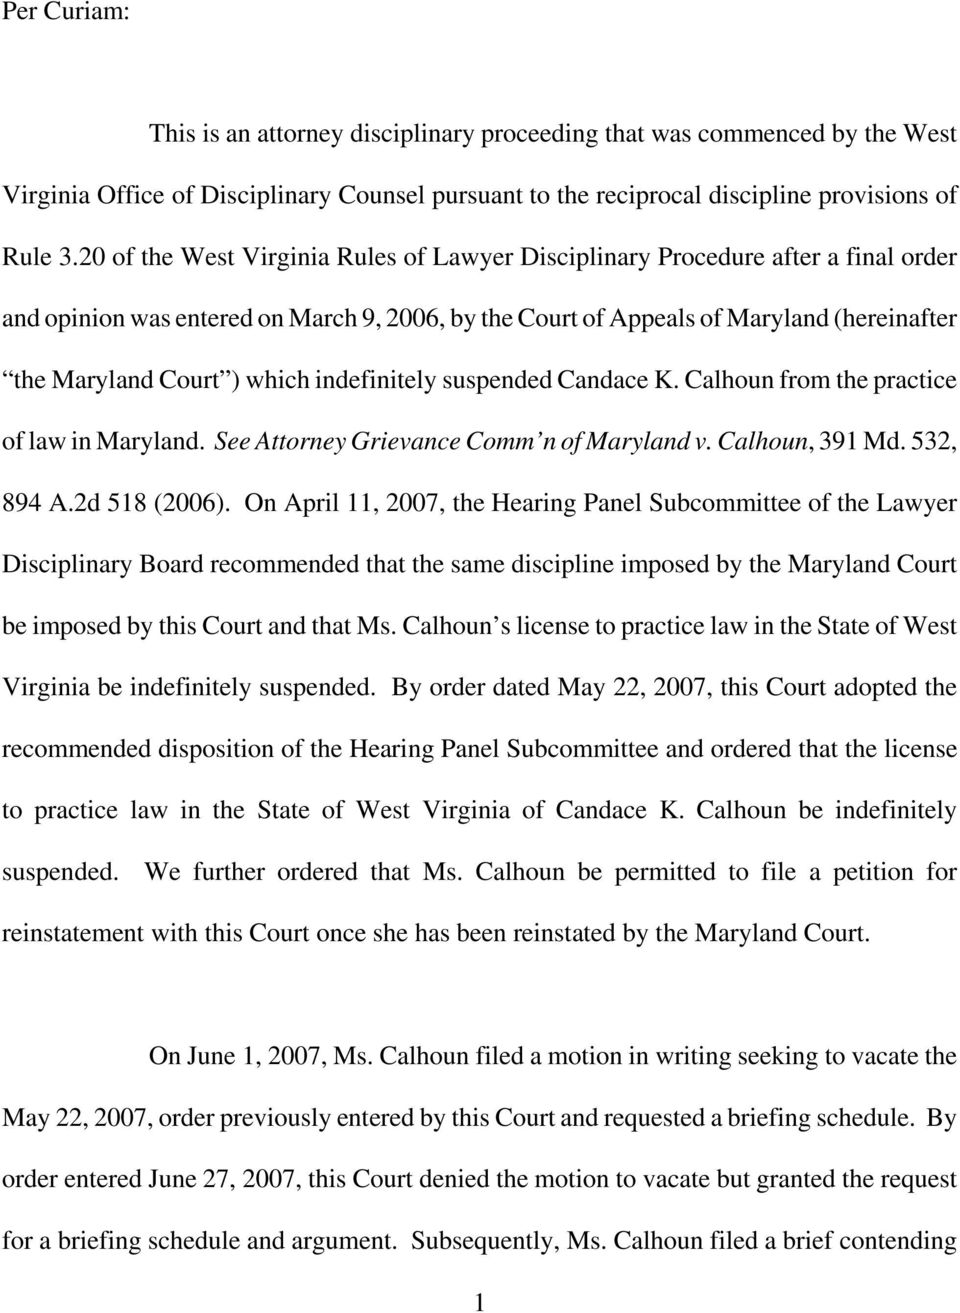 which indefinitely suspended Candace K. Calhoun from the practice of law in Maryland. See Attorney Grievance Comm n of Maryland v. Calhoun, 391 Md. 532, 894 A.2d 518 (2006).